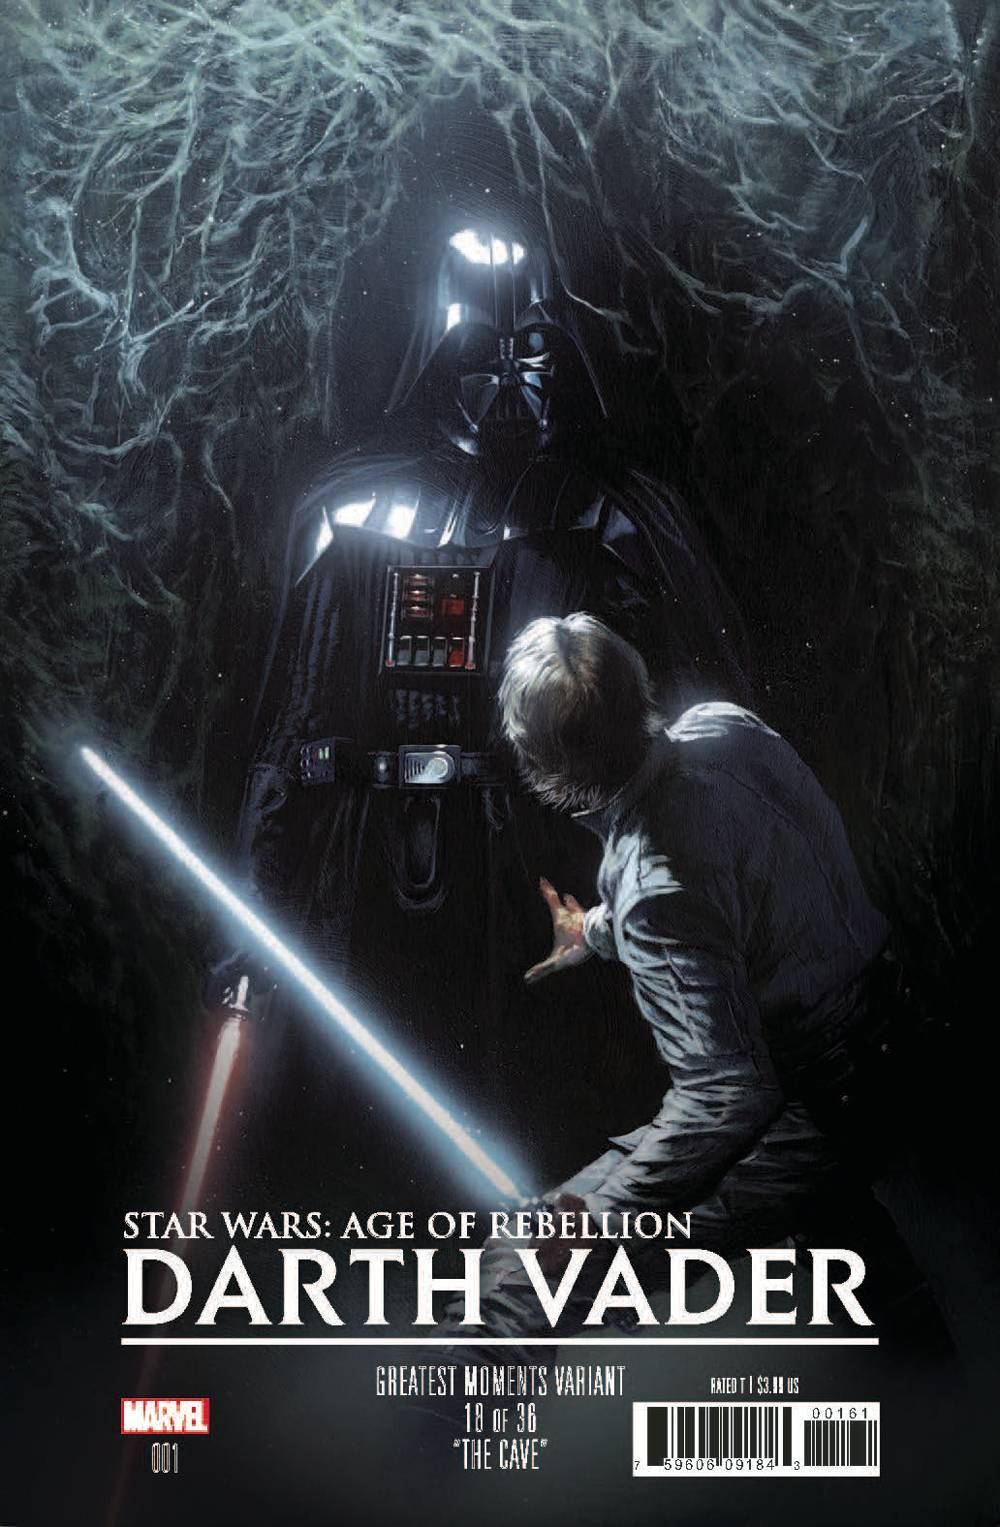 STAR WARS AOR DARTH VADER #1 DELLOTTO GREATEST MOMENTS VAR